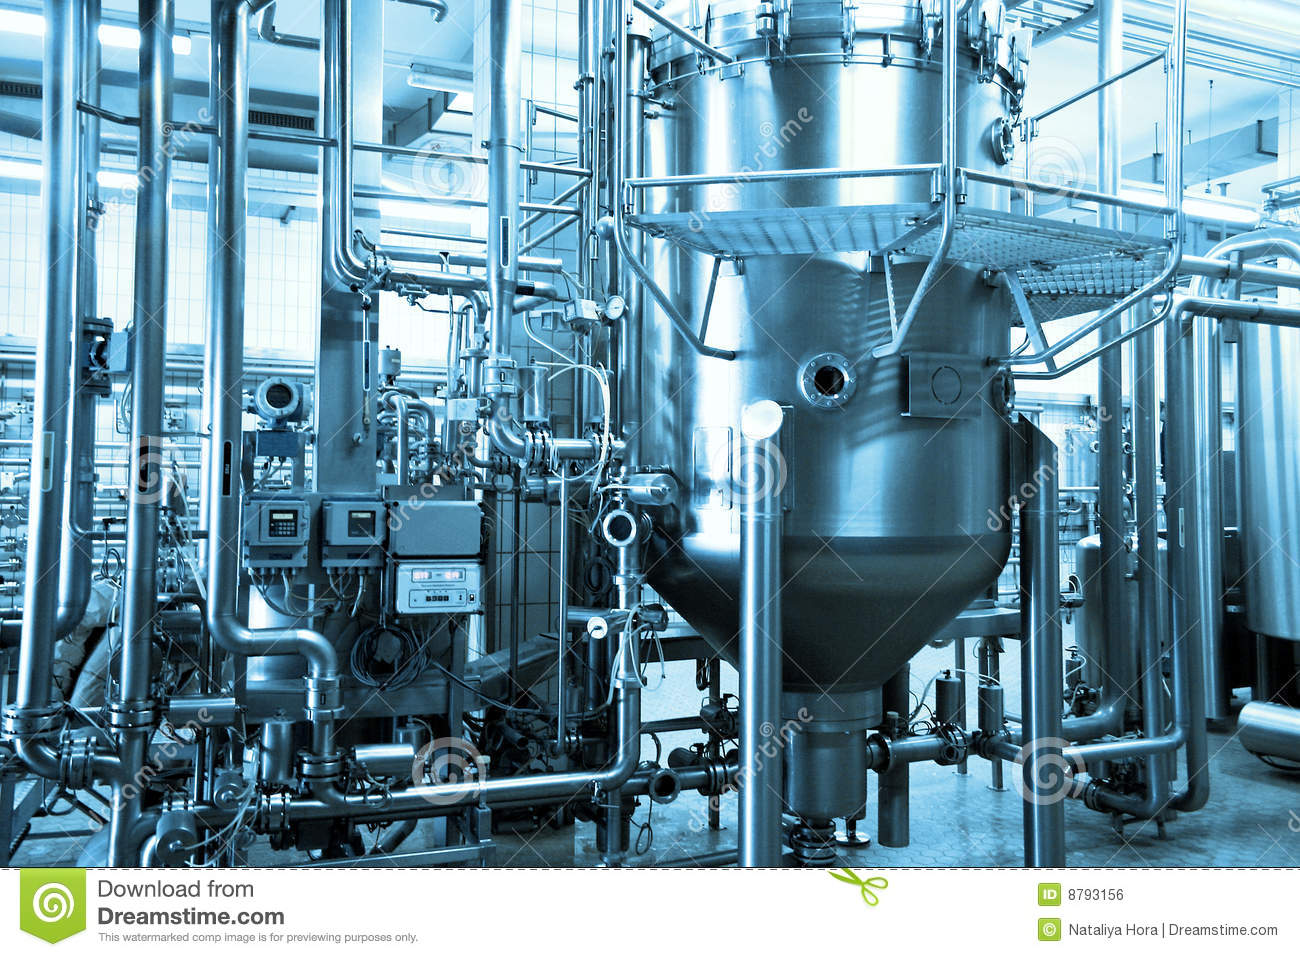 Industrial Background Royalty Free Stock Image - Image: 8793156